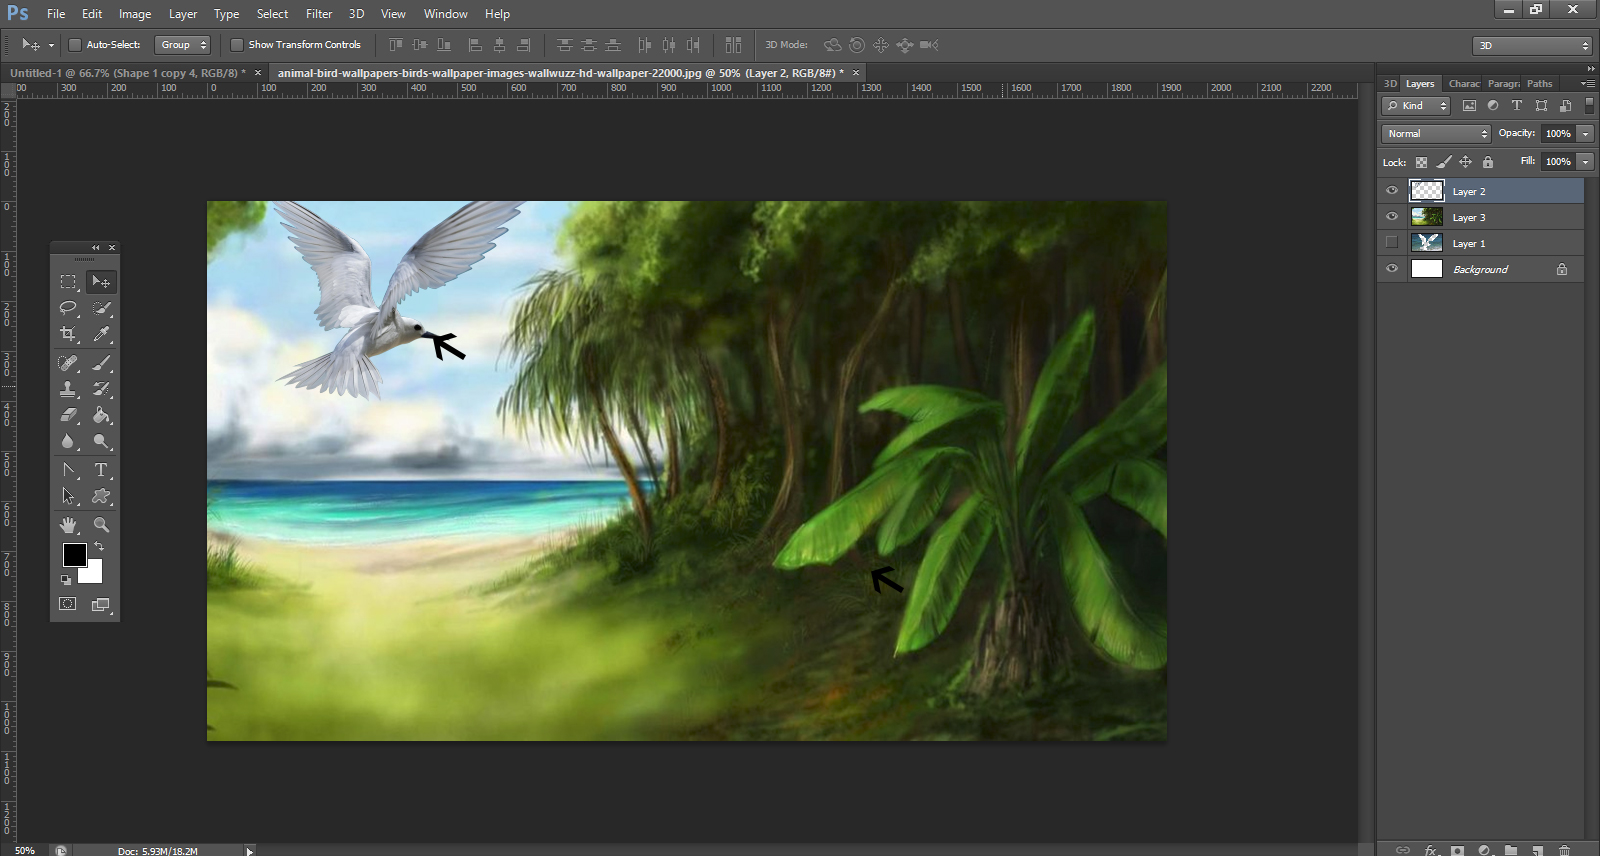 How To Remove Background From An Image In Photoshop8